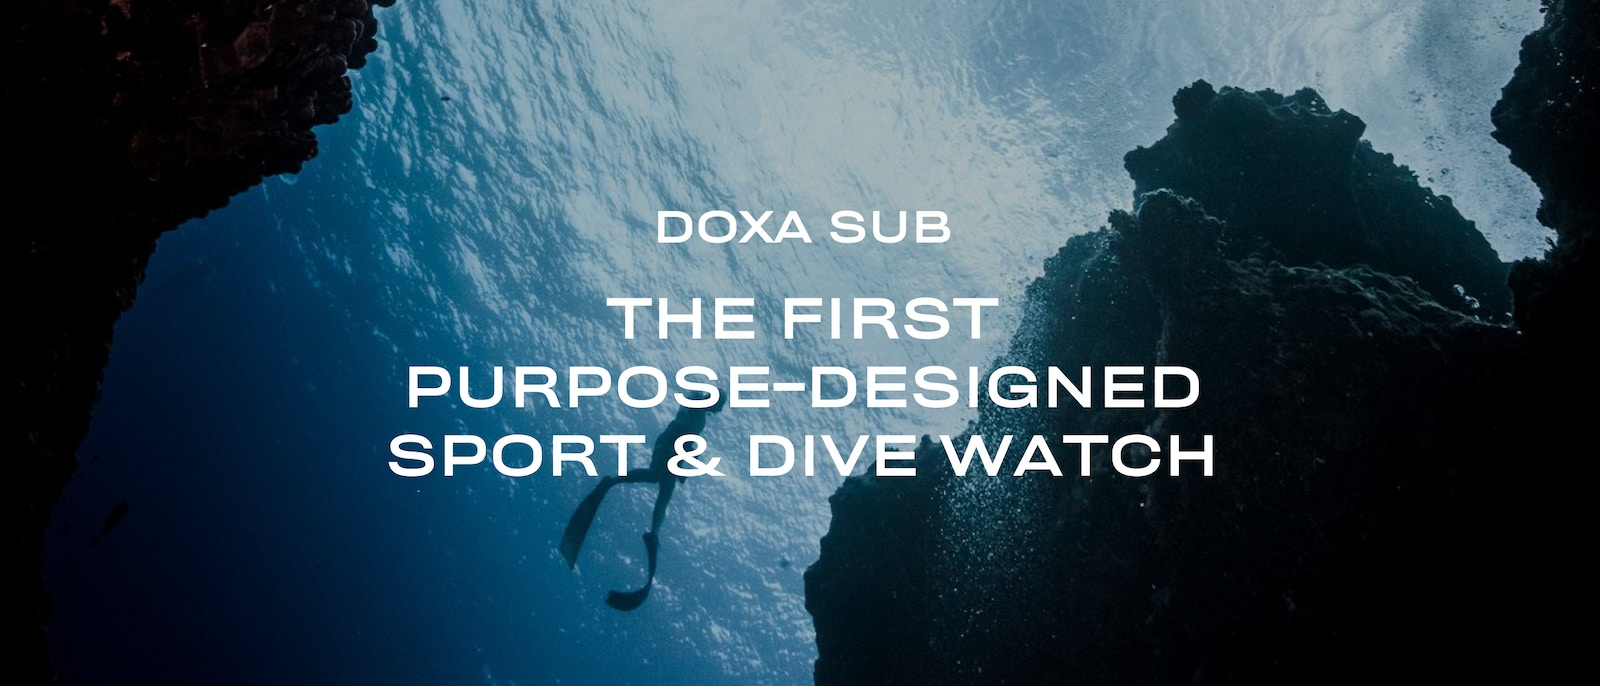 Doxa dive watches